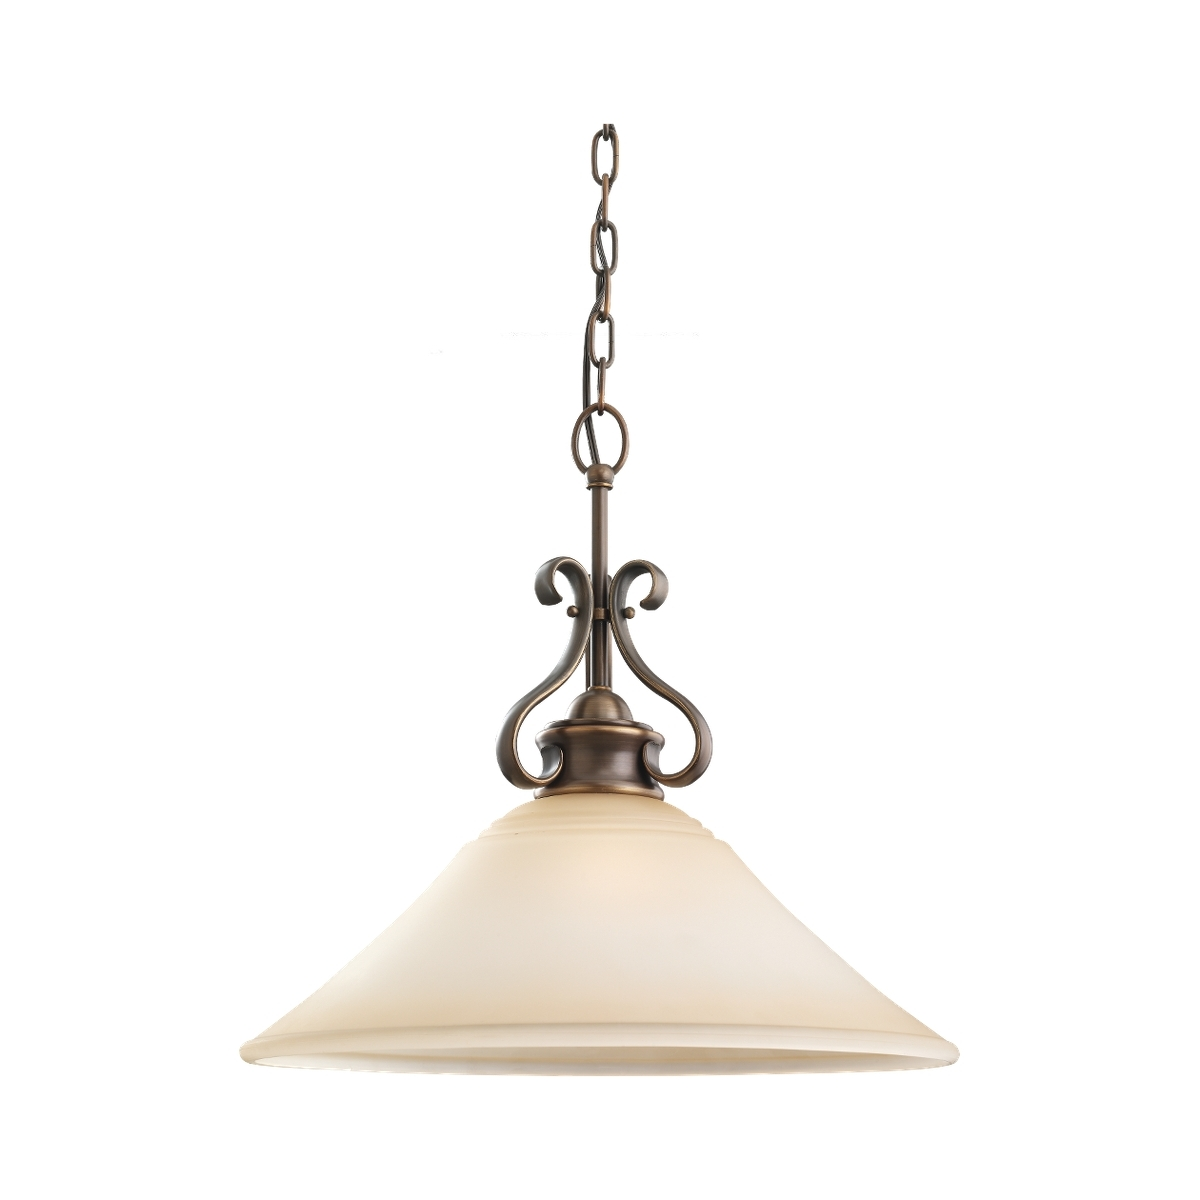 Sea Gull 65380-829 Parkview 1 Light 19 inch Russet Bronze Pendant Ceiling Light in Ginger Glass, Standard photo